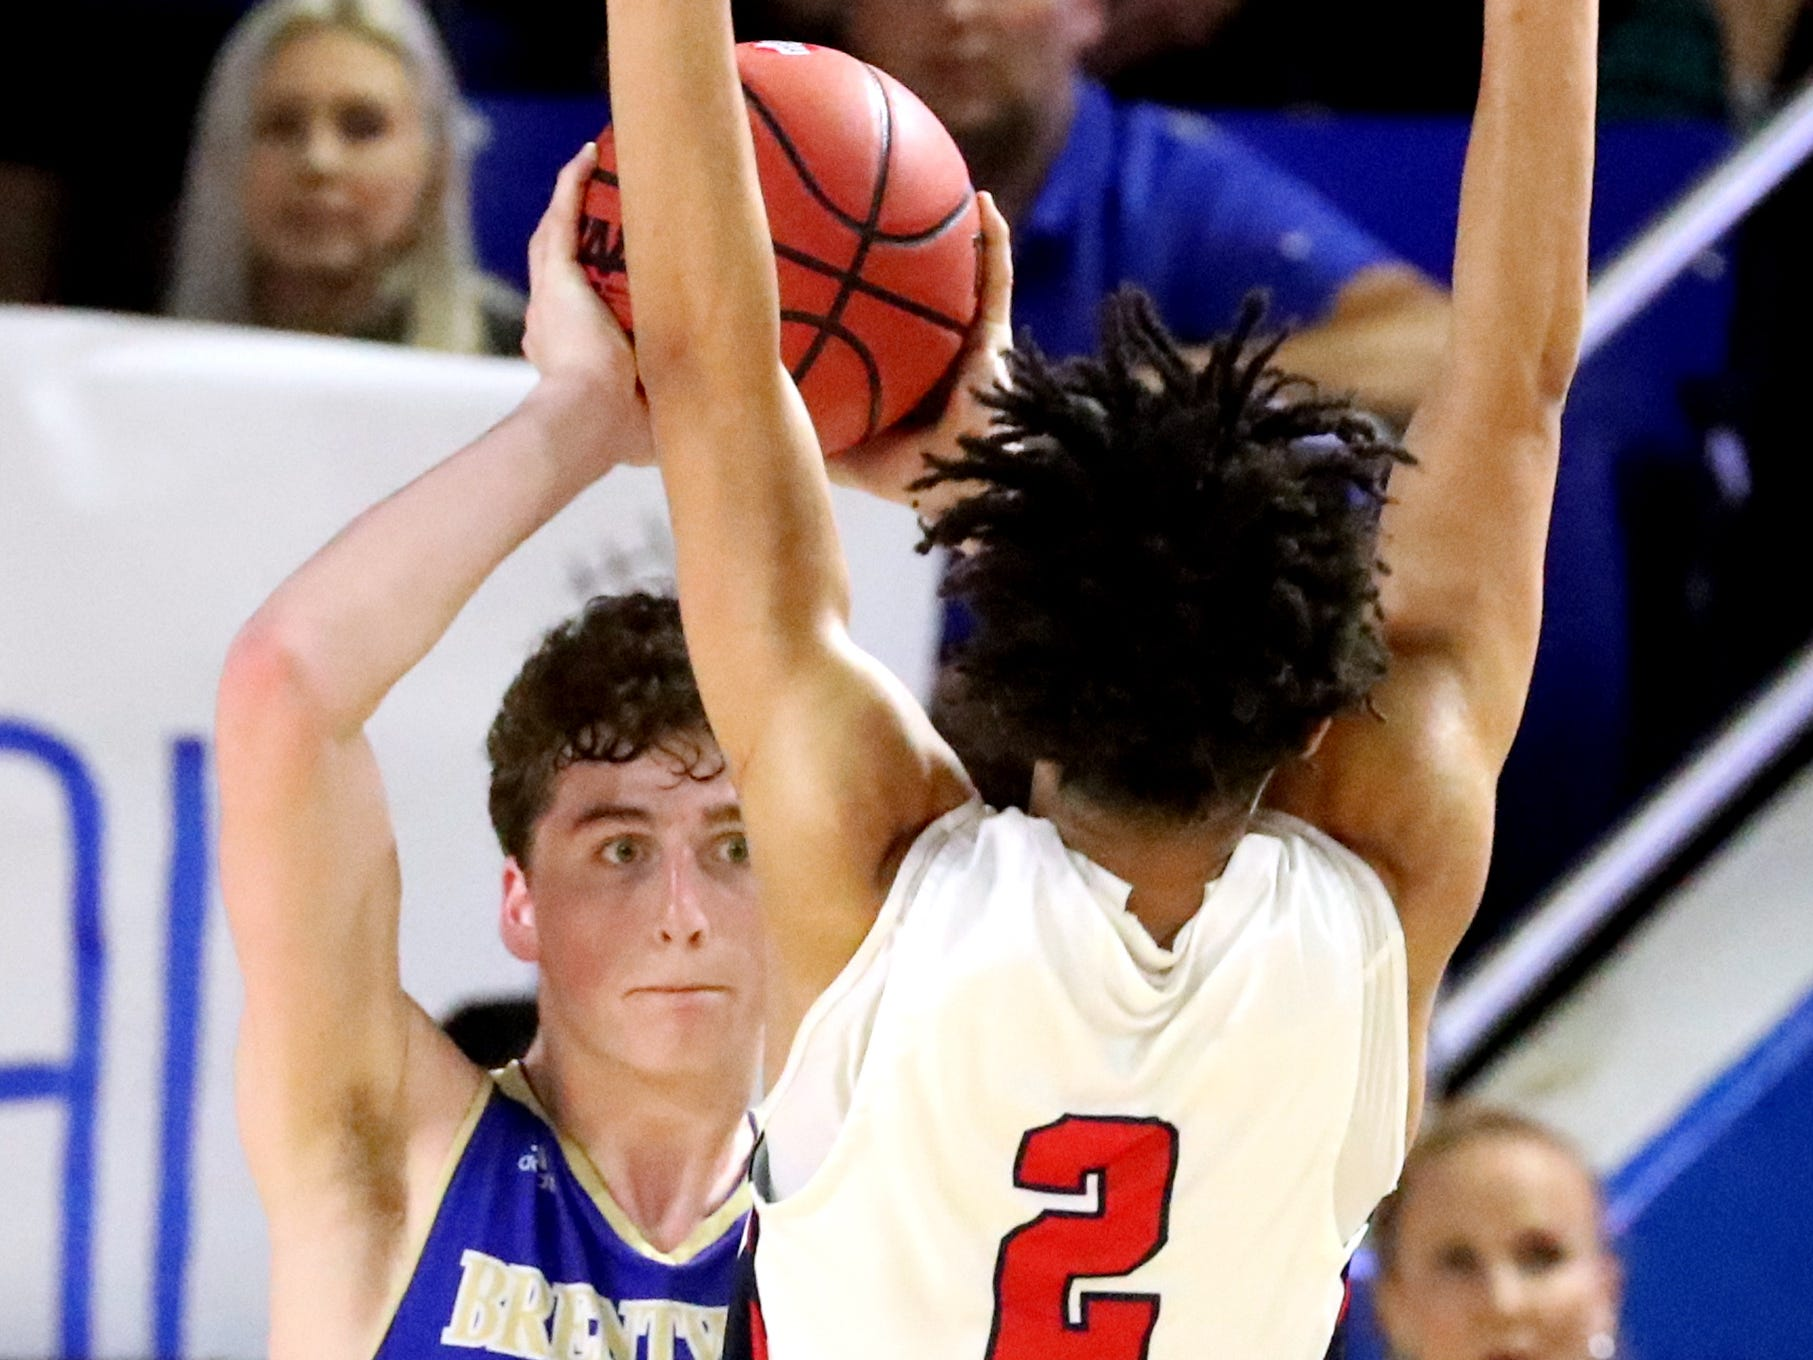 Brentwood's Ben Mills (34) looks to pass the ball as Oakland's Lonnie Tyler (2) guards him during the quarterfinal round of the TSSAA Class AAA Boys State Tournament, on Thursday, March 14, 2019, at Murphy Center in Murfreesboro, Tenn.